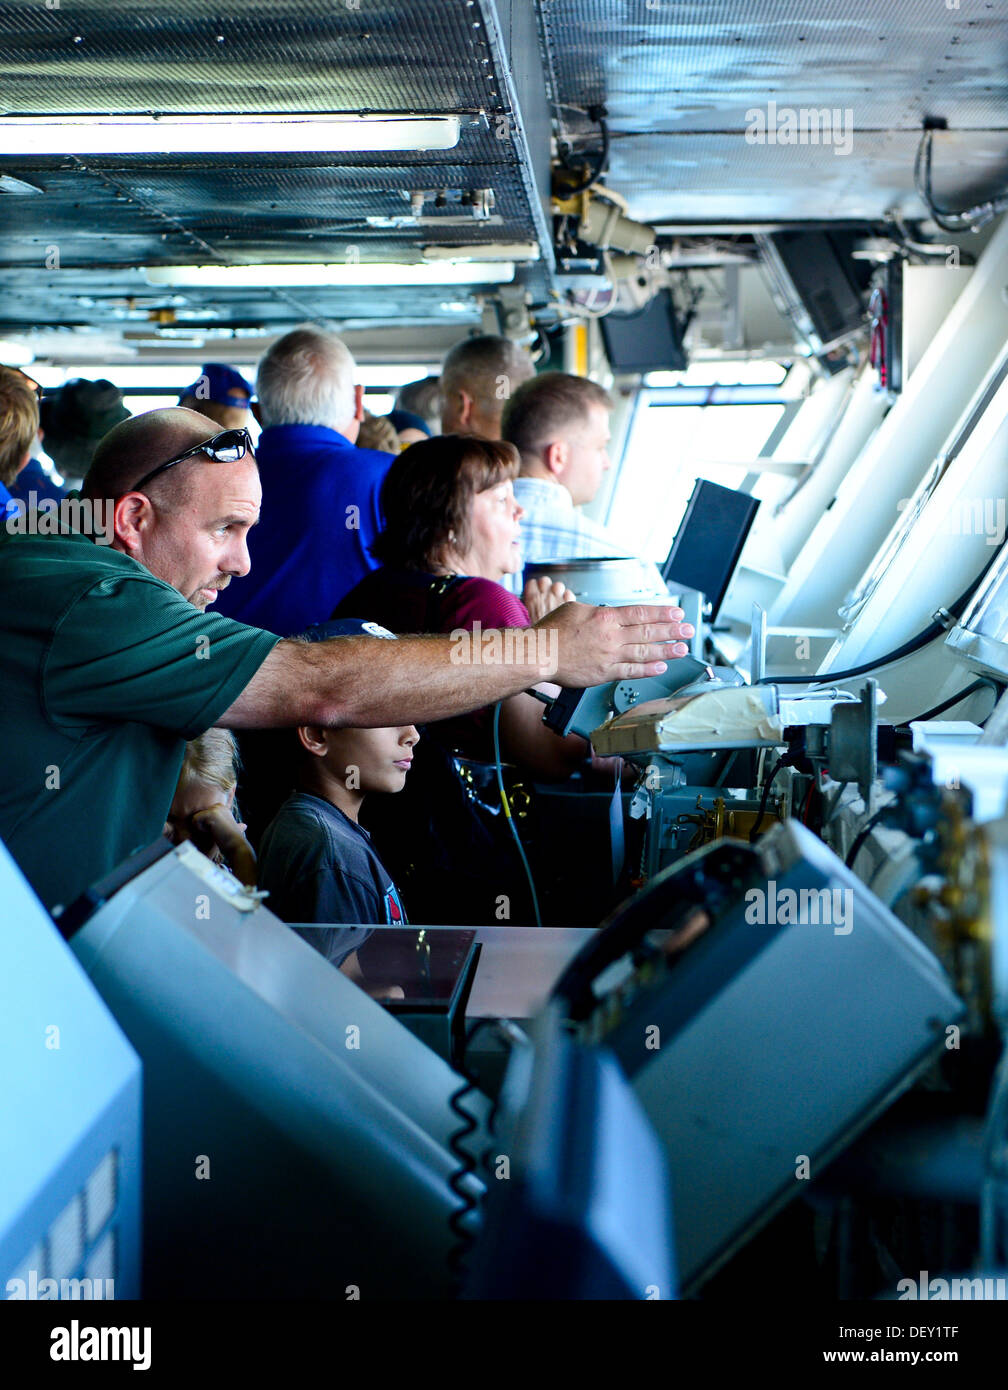 """Guests tour the navigation bridge aboard the aircraft carrier USS Ronald Reagan (CVN 76). Ronald Reagan, """"America's Flagship,"""" is participating in the annual Coronado Speed Festival. This event was created in 1997, to honor the military while enjoying a r - Stock Image"""